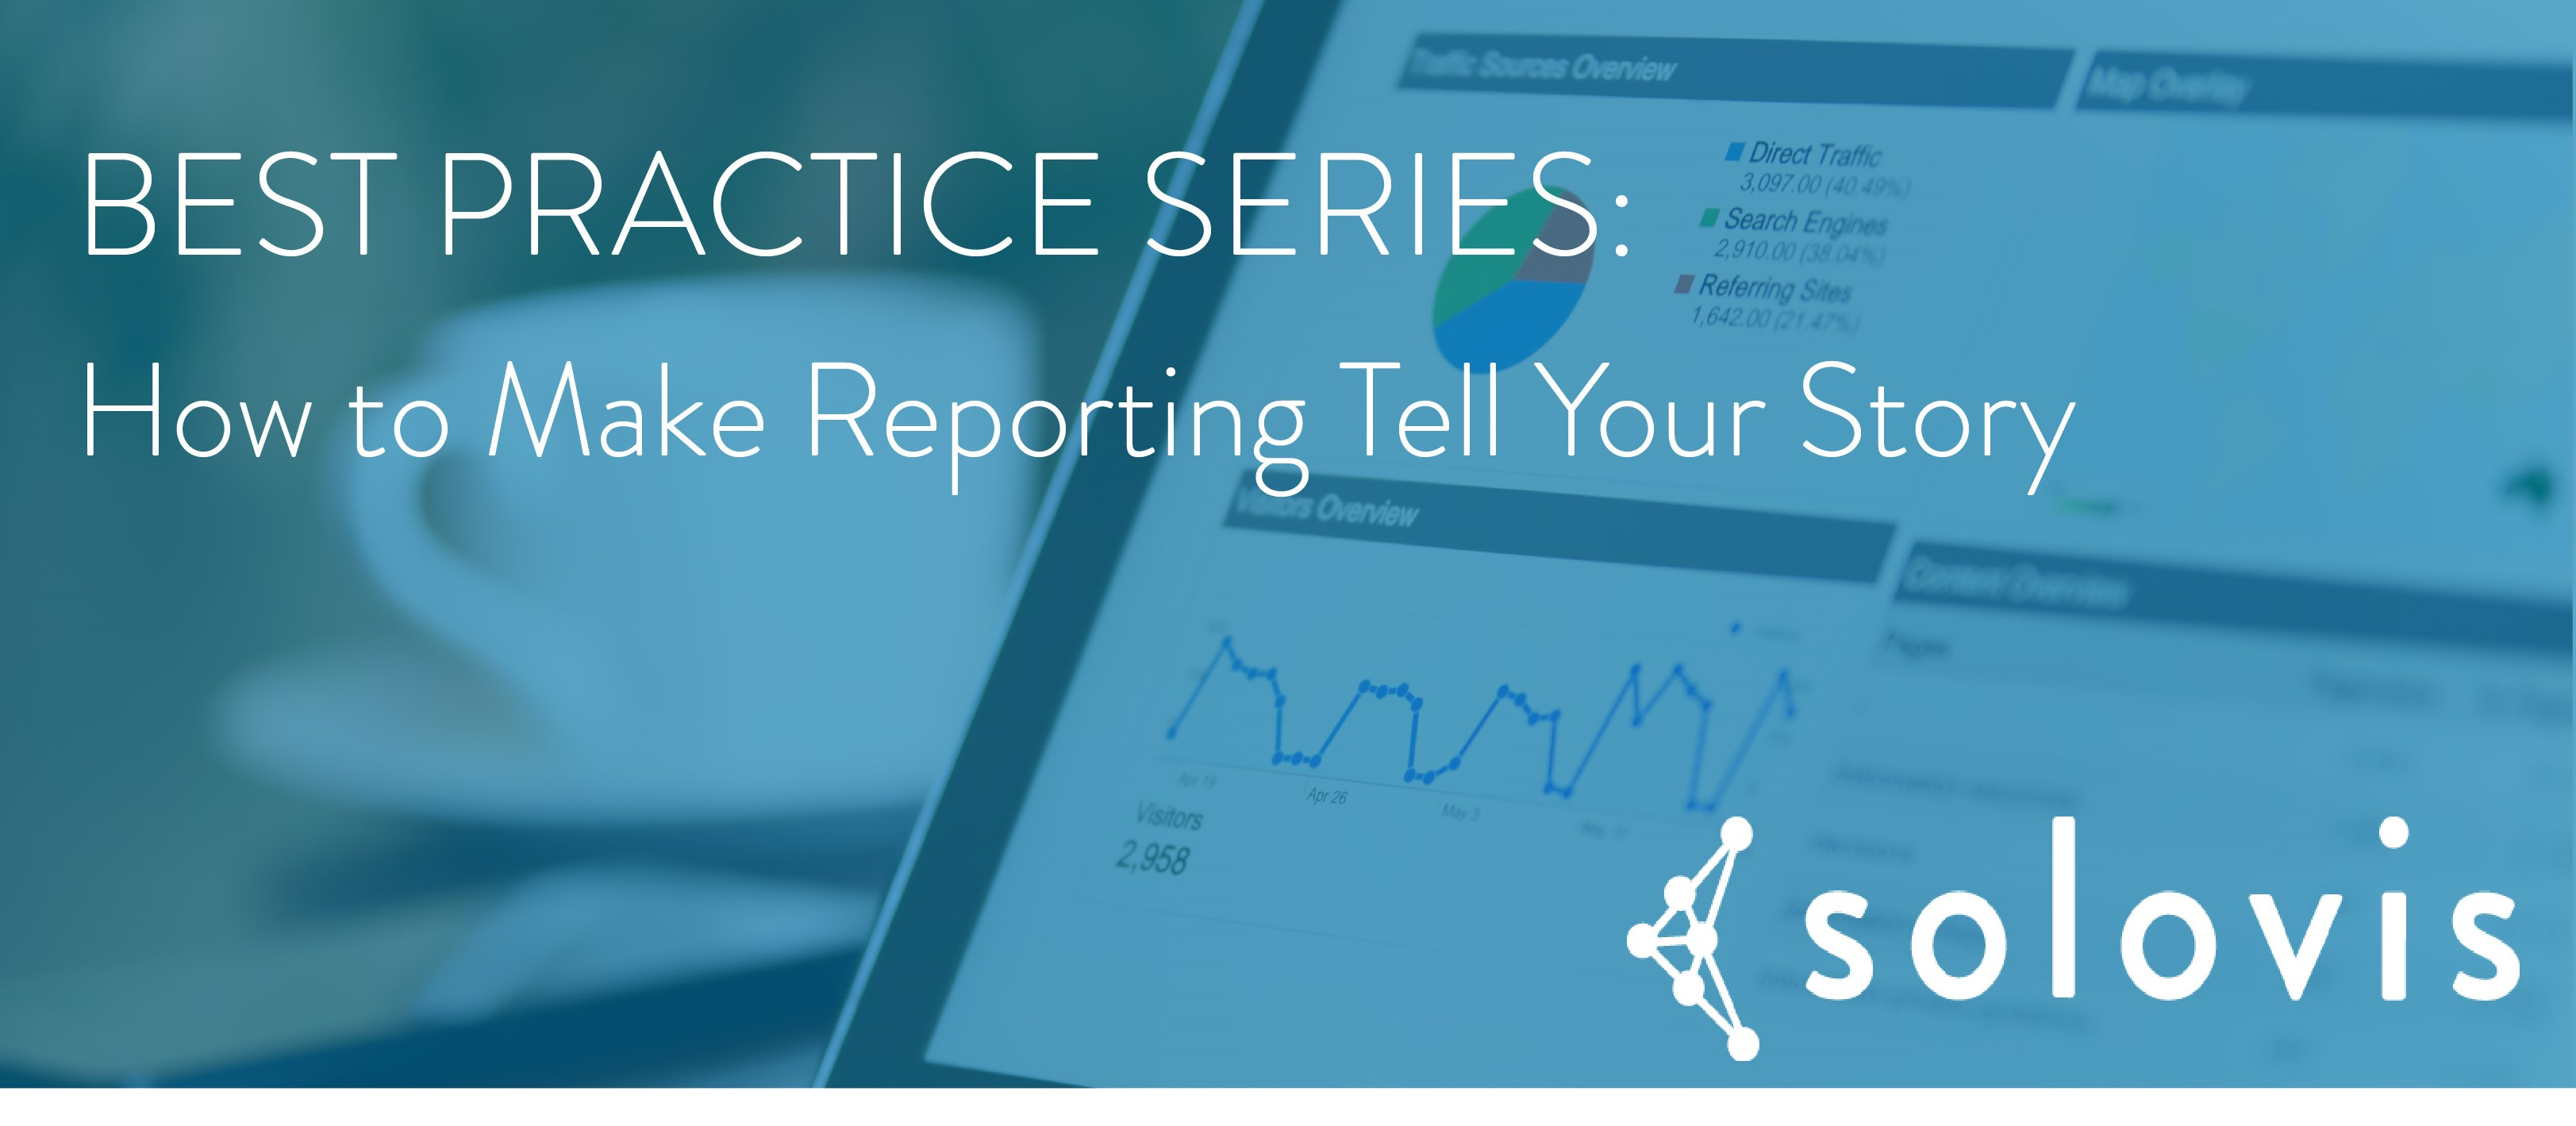 How to make reporting tell your story